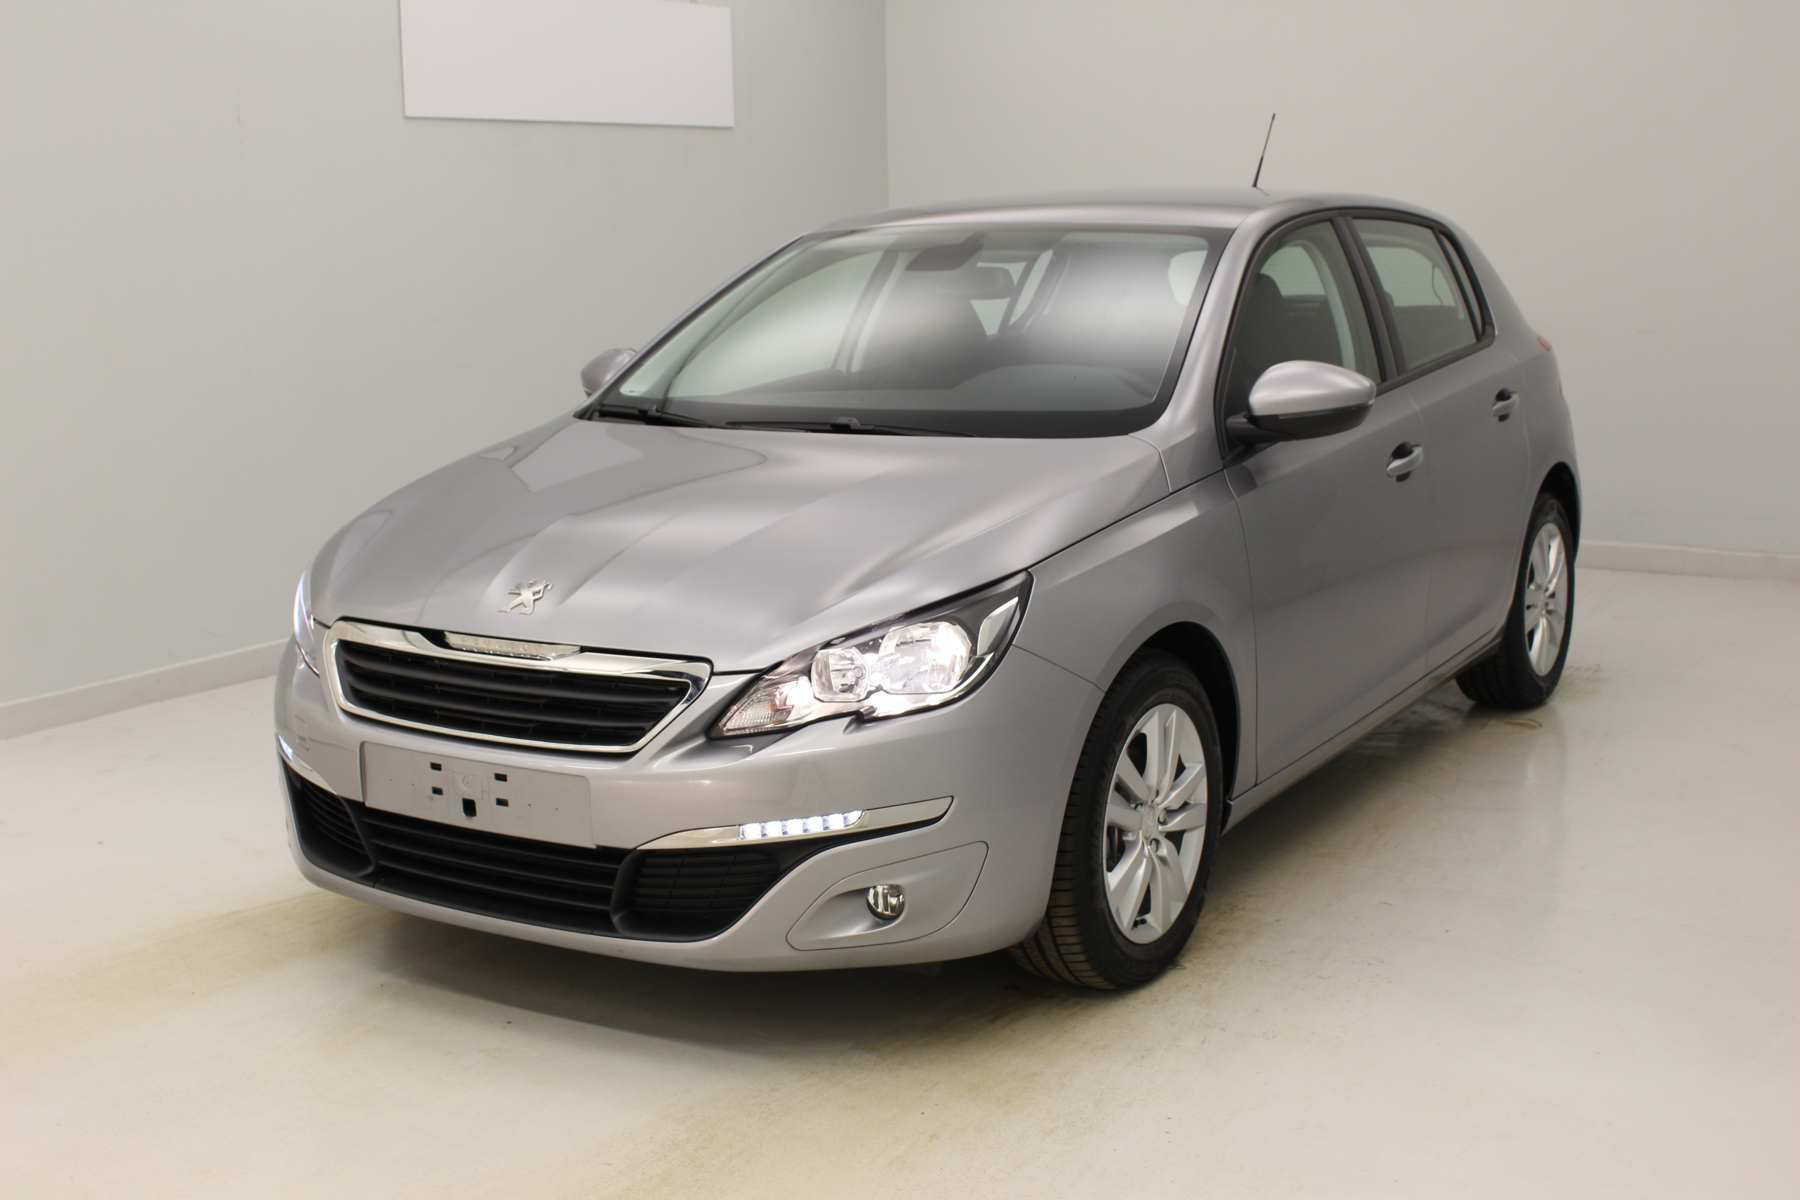 PEUGEOT 308 1.6 BlueHDi 120ch S&S BVM6 Active Gris Artense  + Navigation avec options